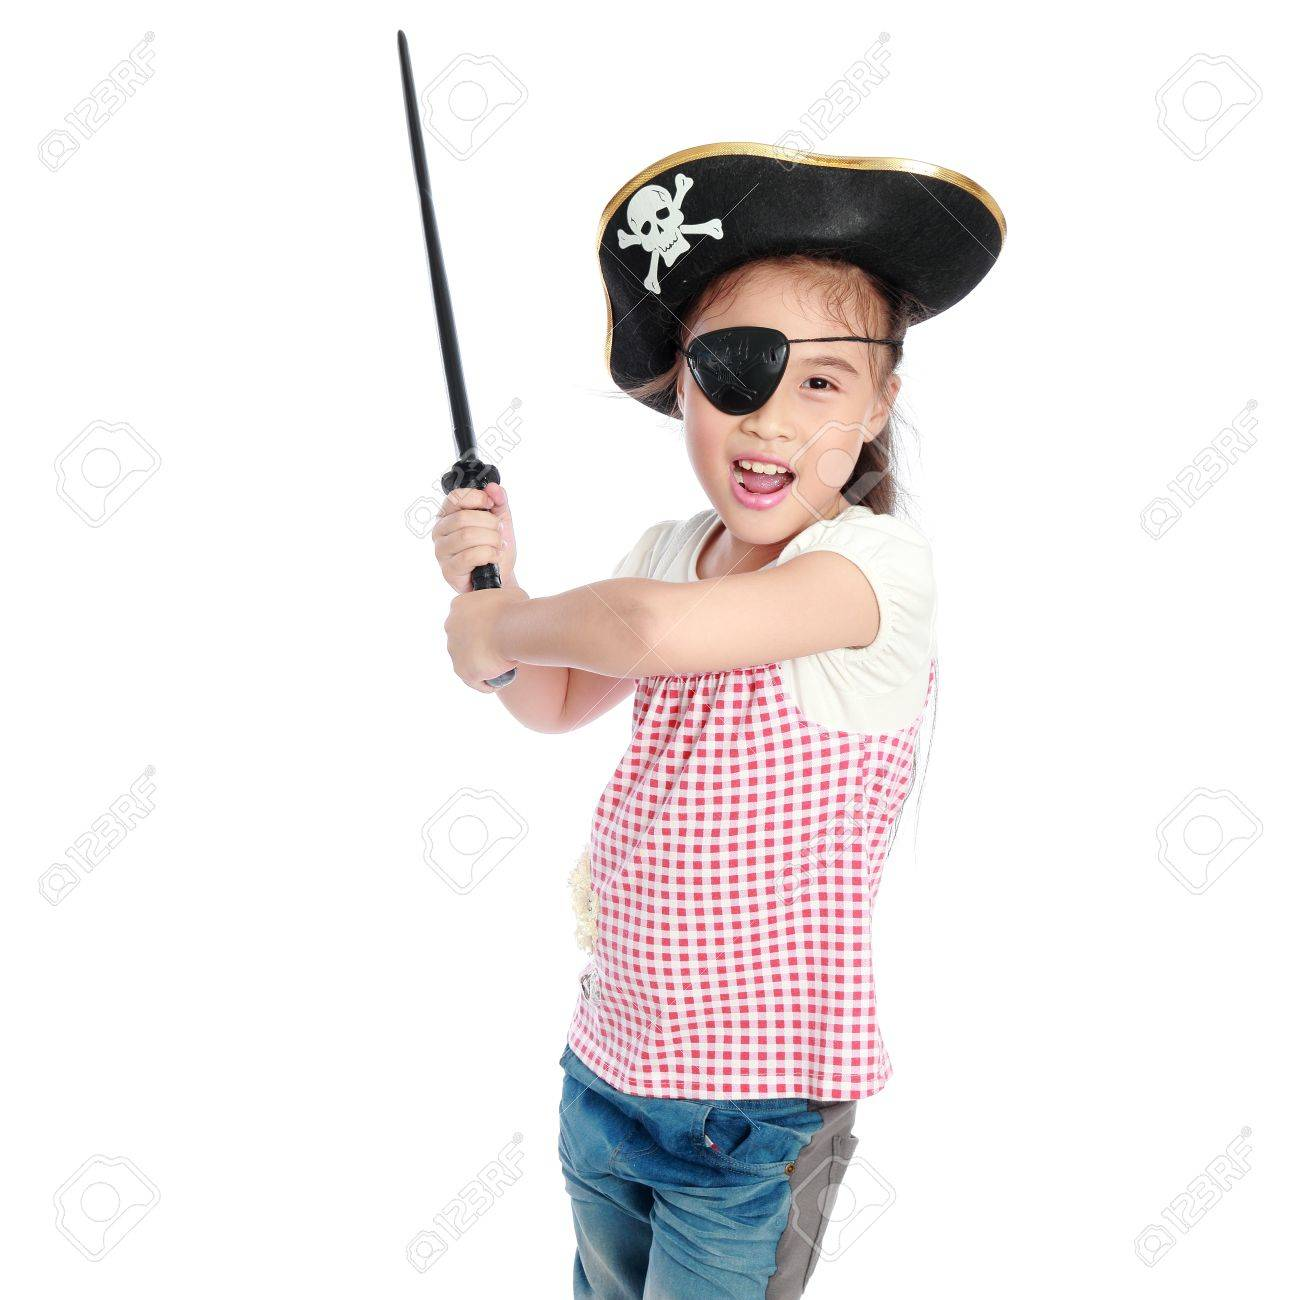 Pirate girl isolated white background - 15623058